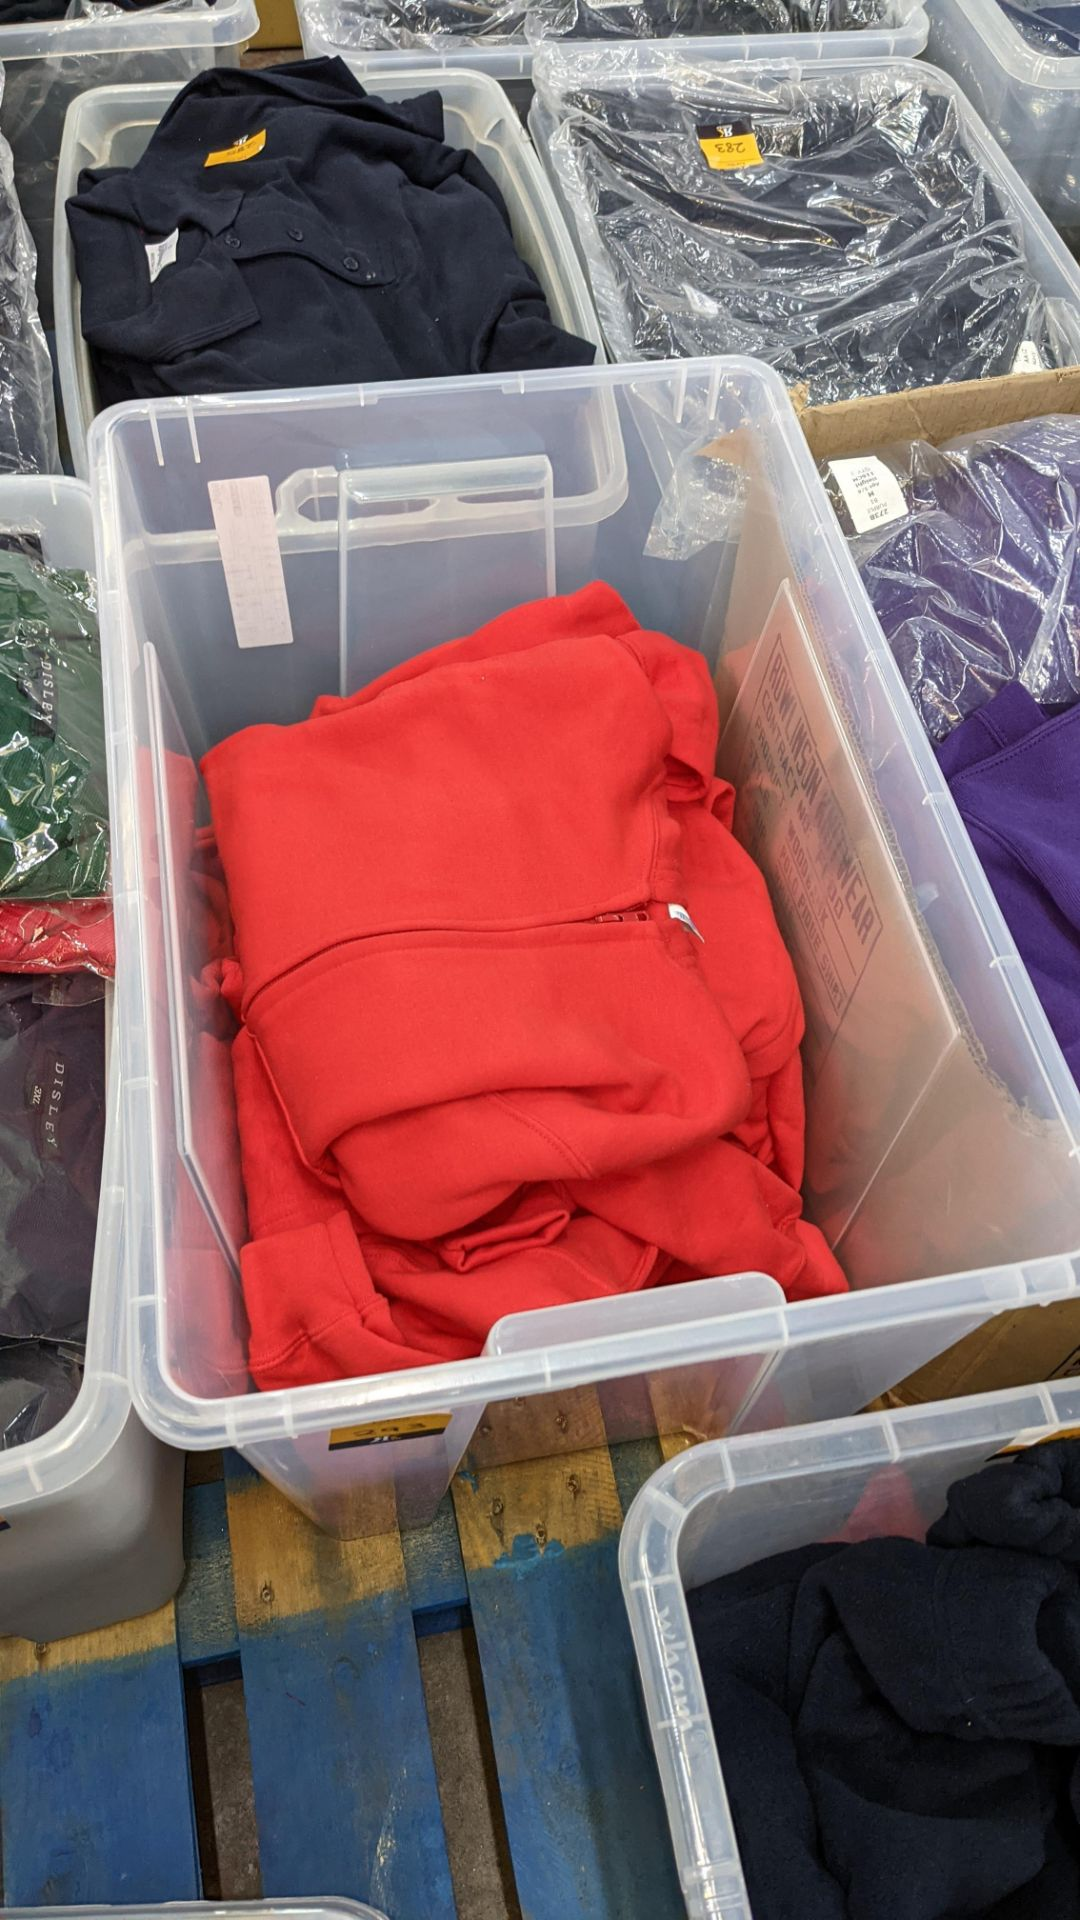 Approx 7 off children's zip up red hooded tops - the contents of 1 large crate. NB crate excluded - Image 2 of 4